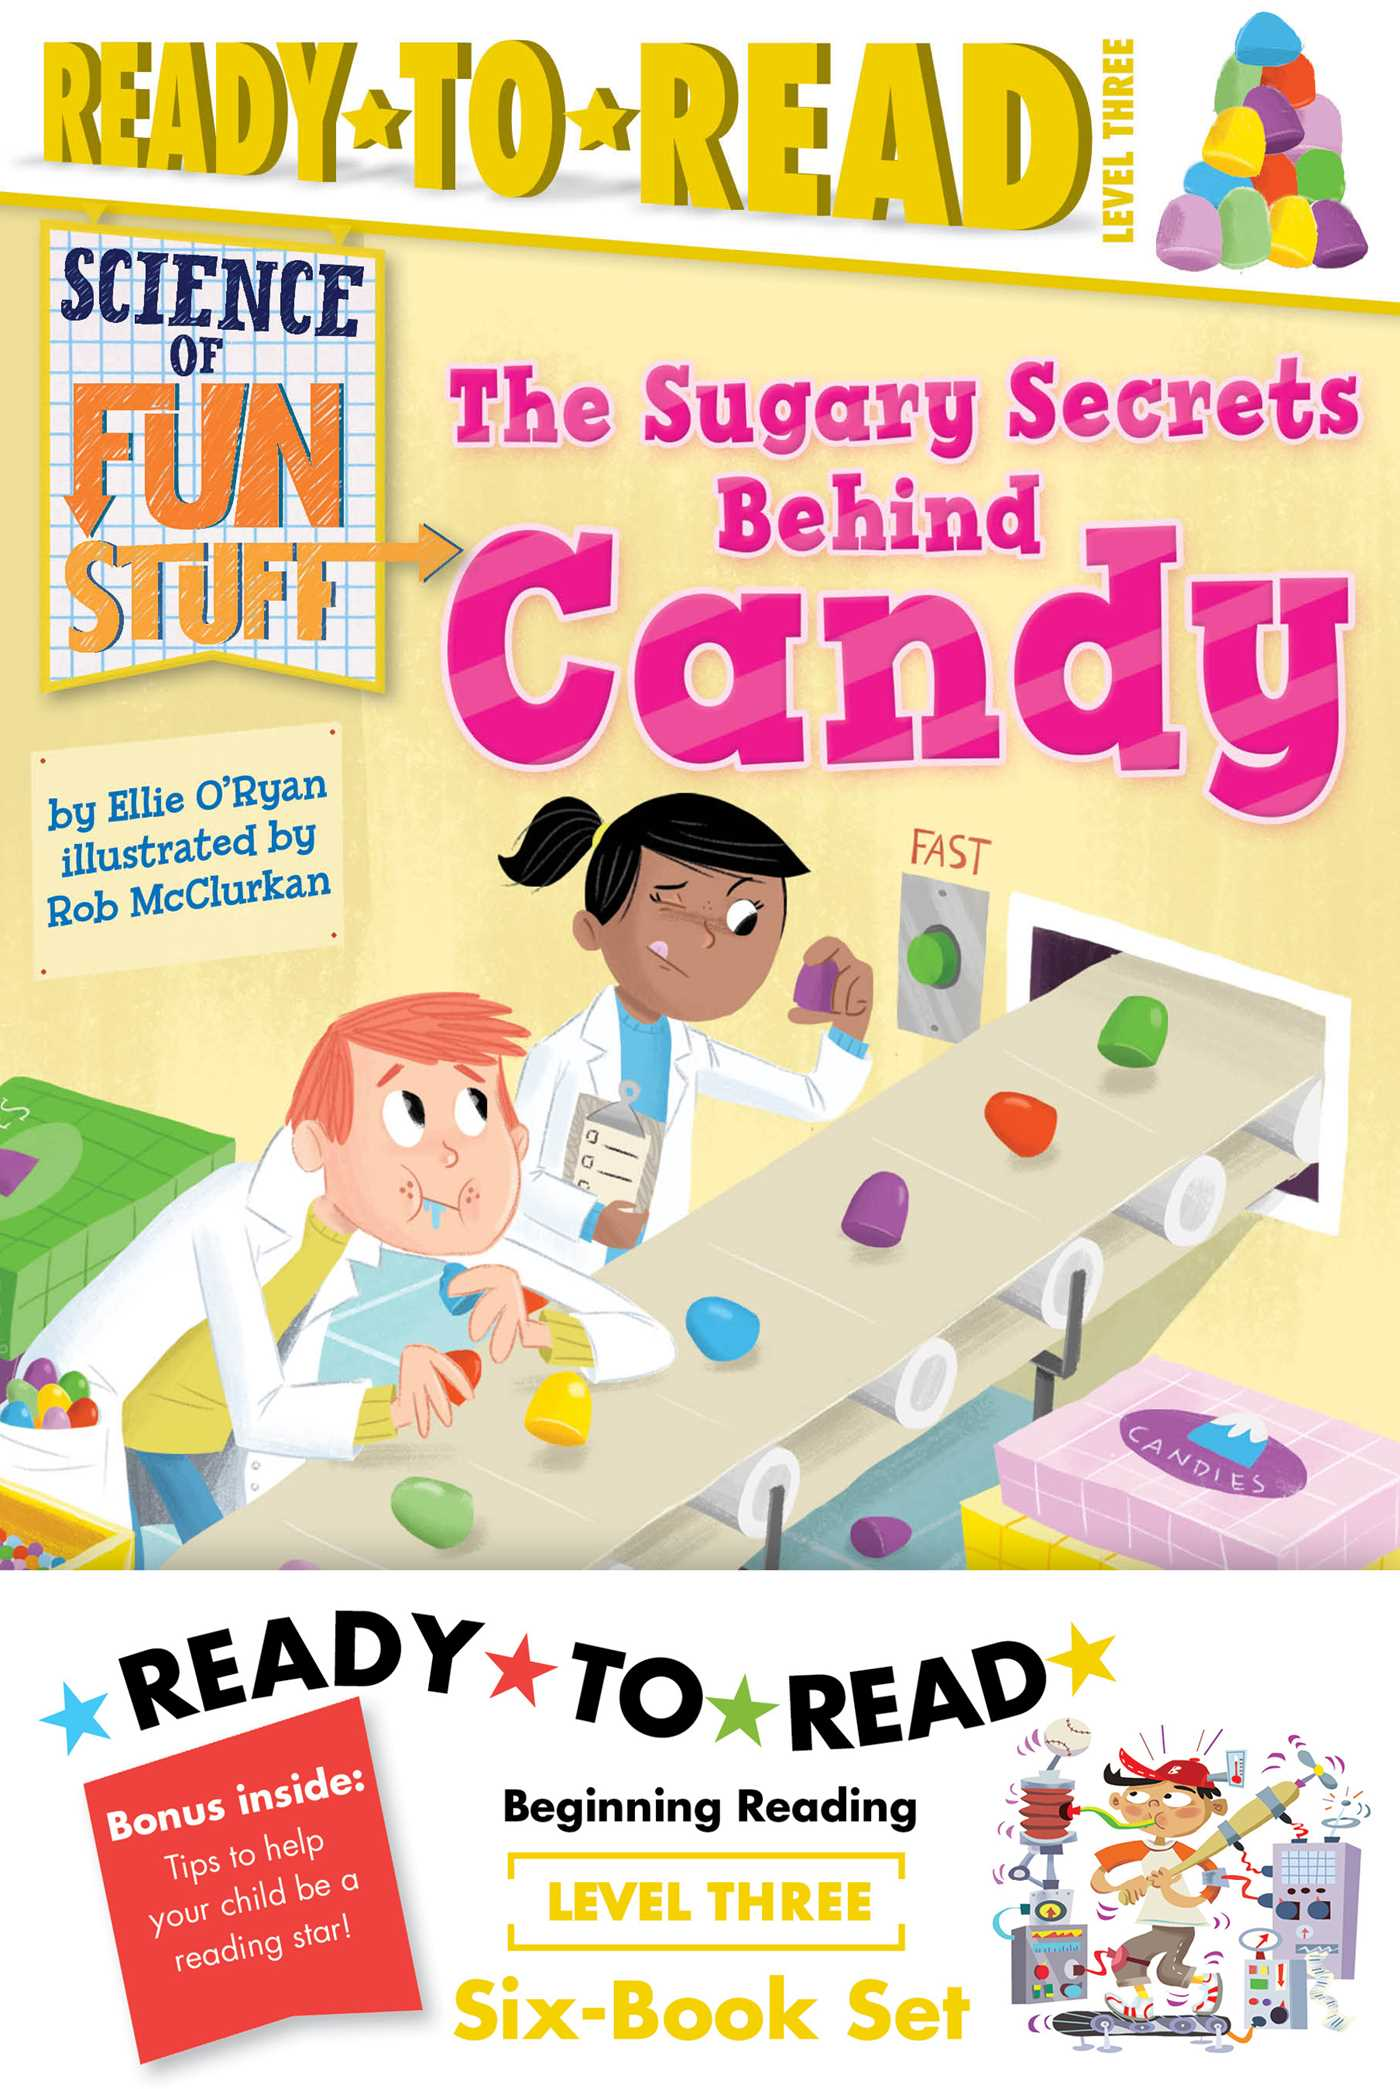 Science of fun stuff ready to read value pack 9781481489775 hr